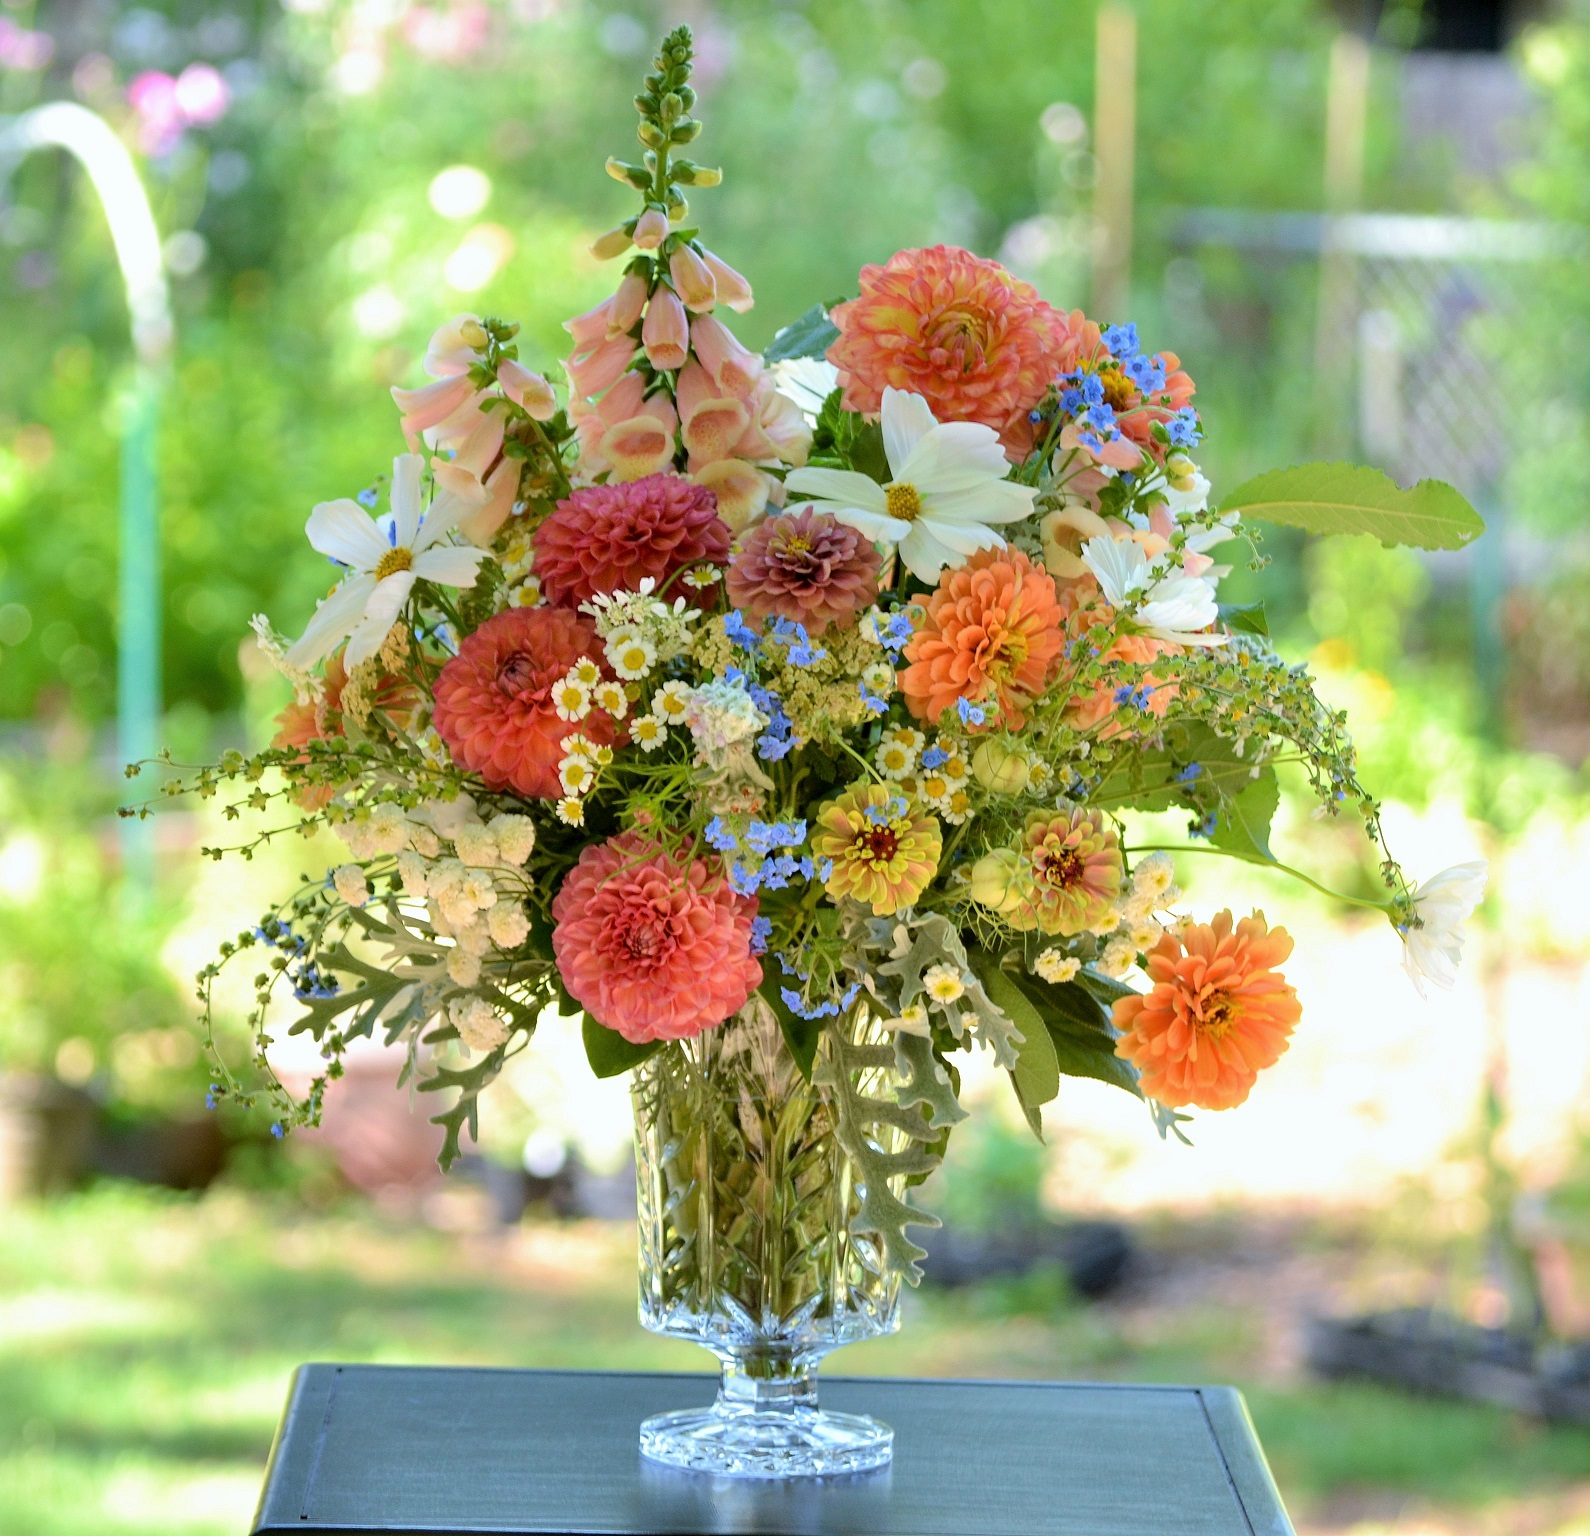 Wedding Flowers from Springwell Garden Wedding Flowers in Peach